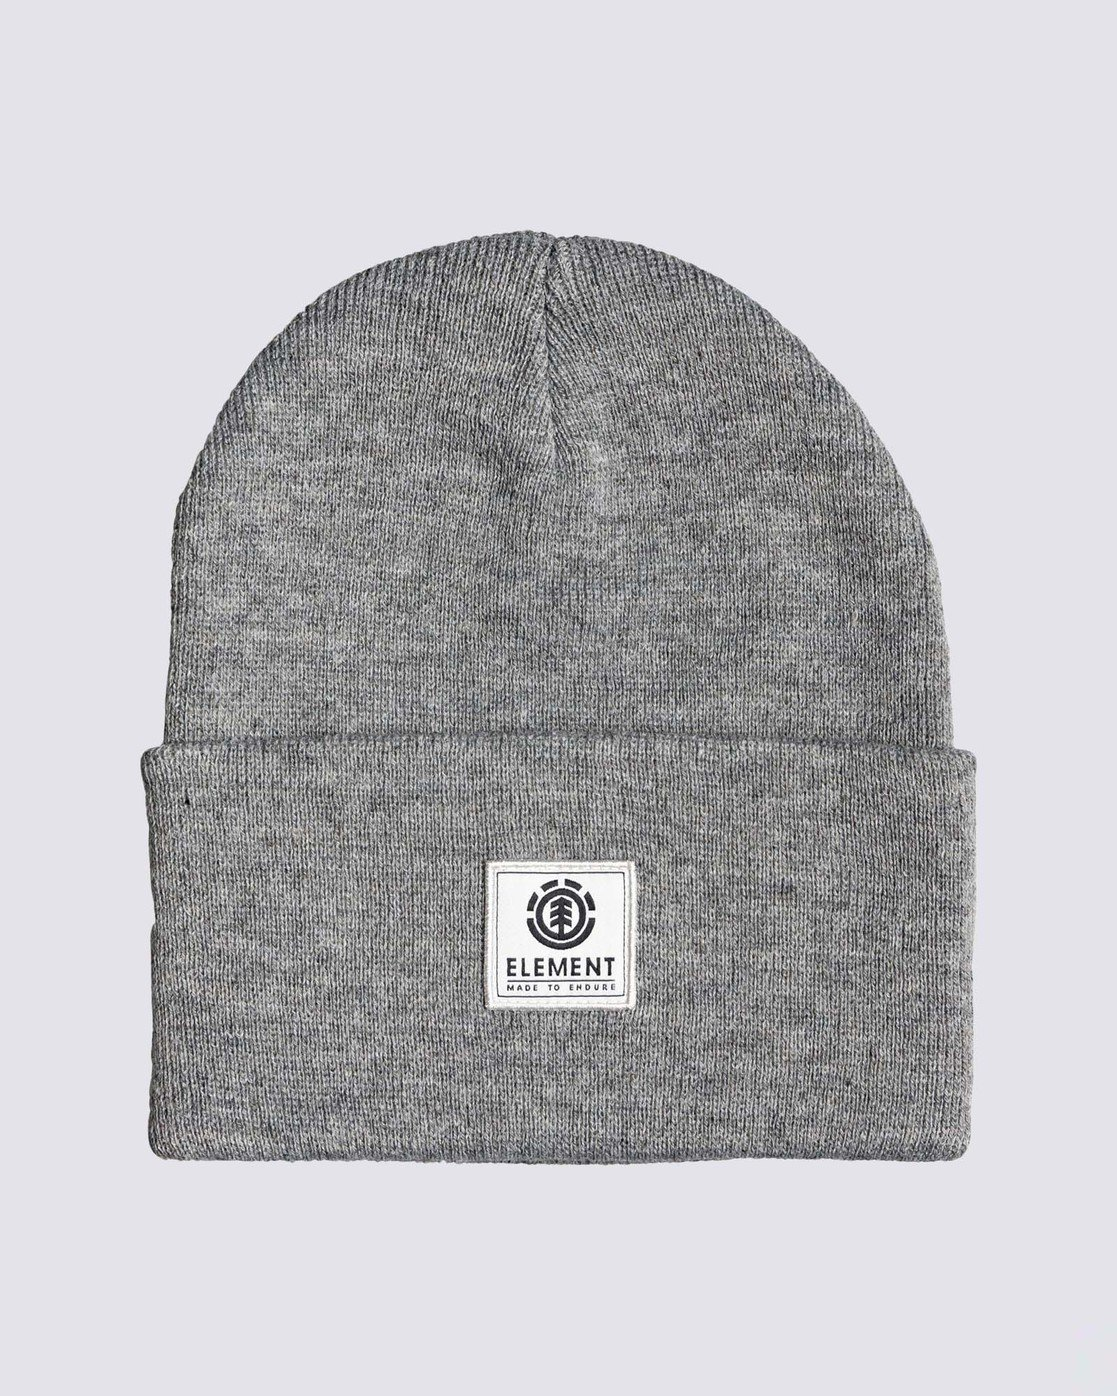 0 Dusk Beanie Grey MABN3EDU Element